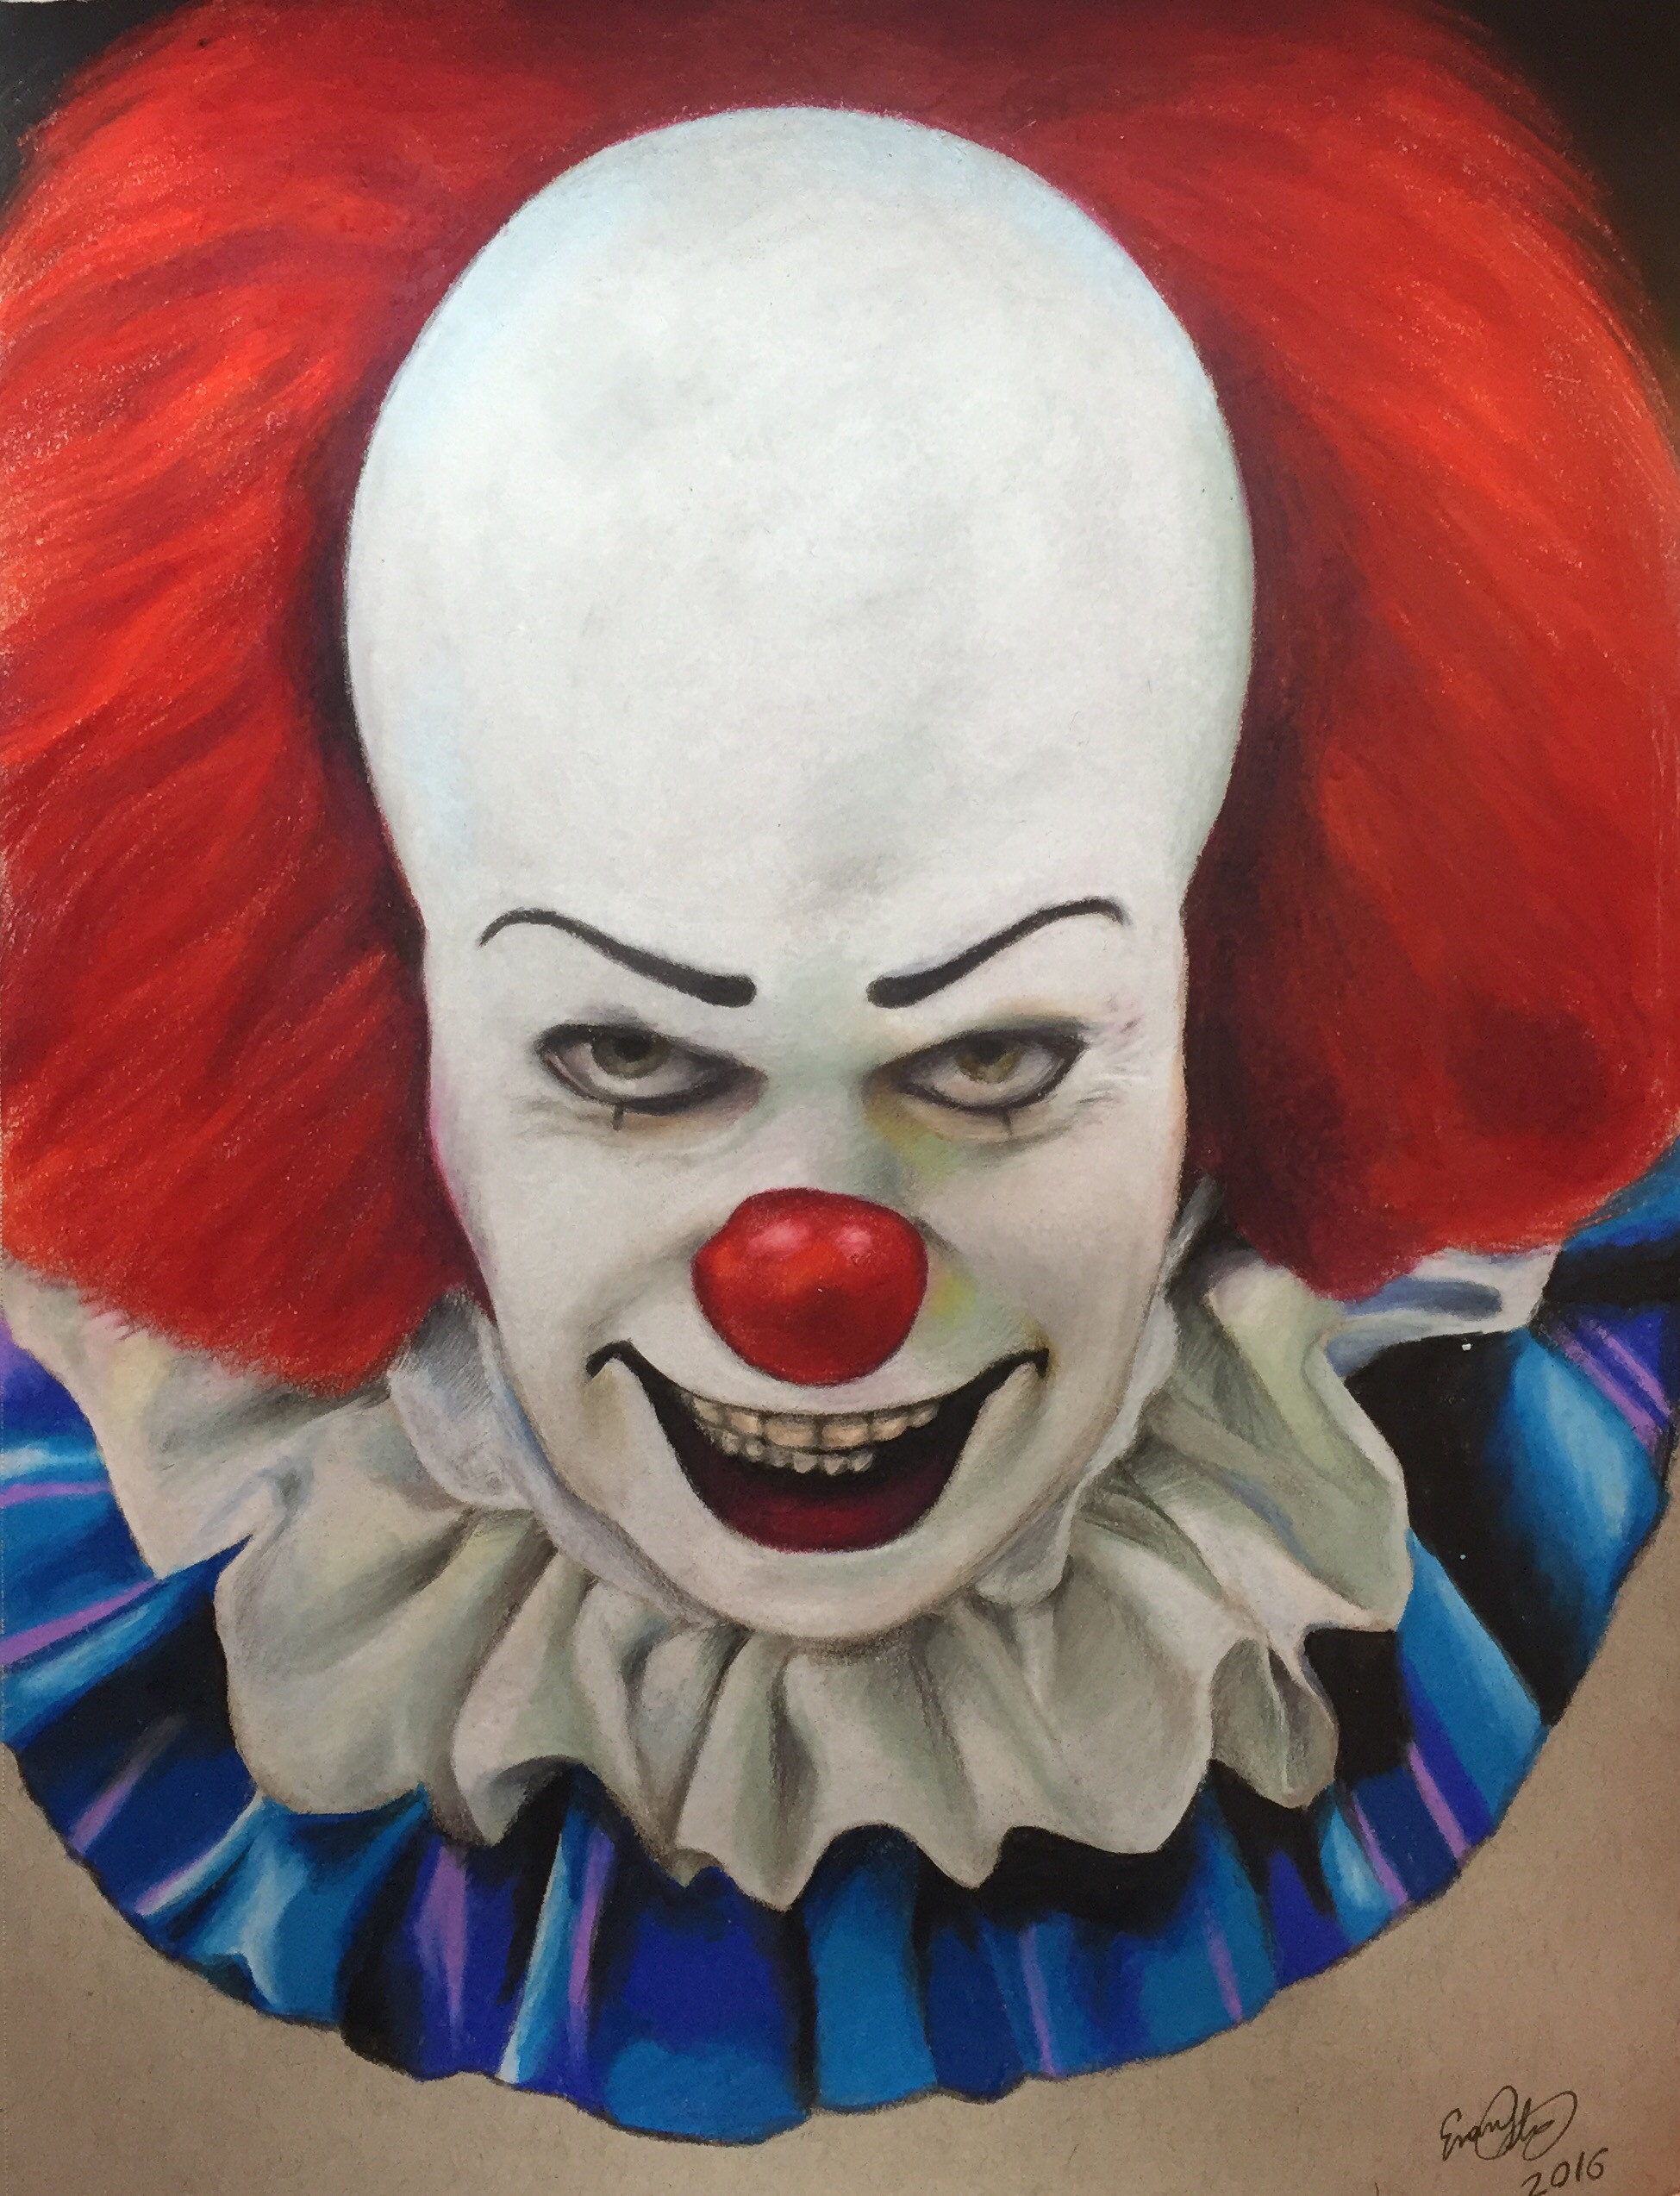 … Pennywise the clown colored pencil drawing by evanartt